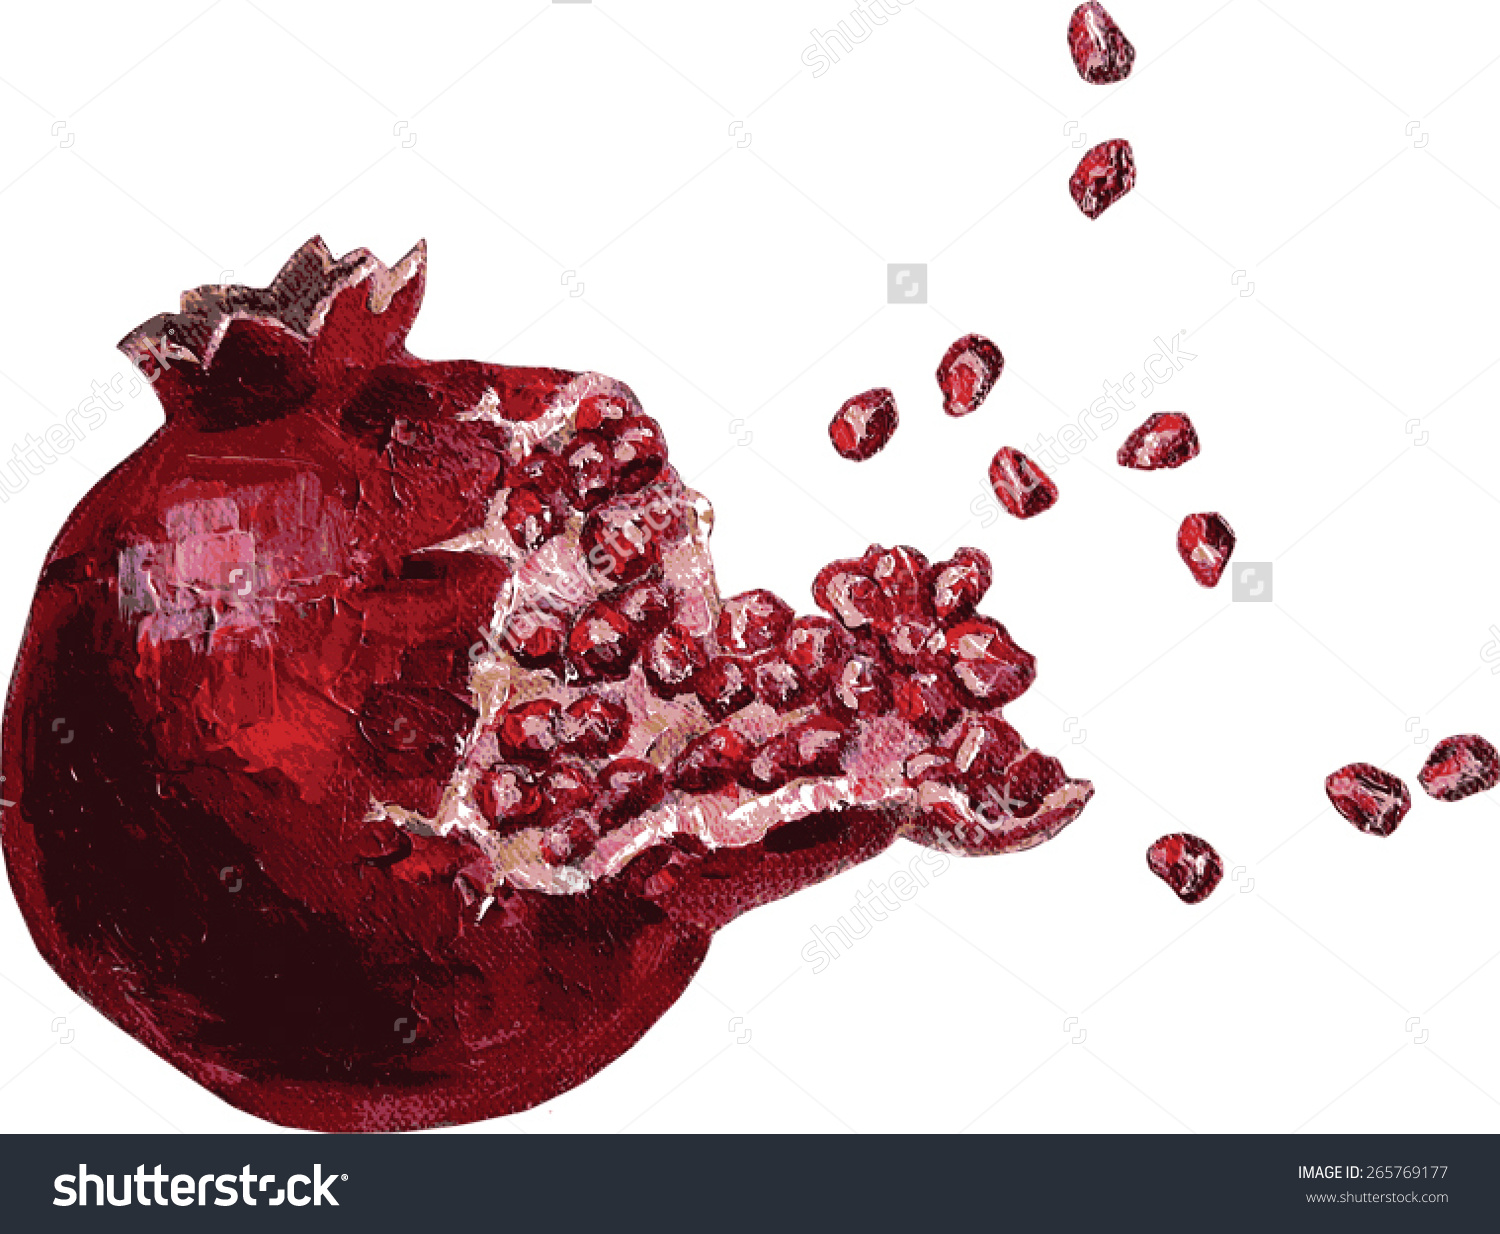 Vector Ripe Pomegranate Fruit Bursting Open Stock Vector 265769177.